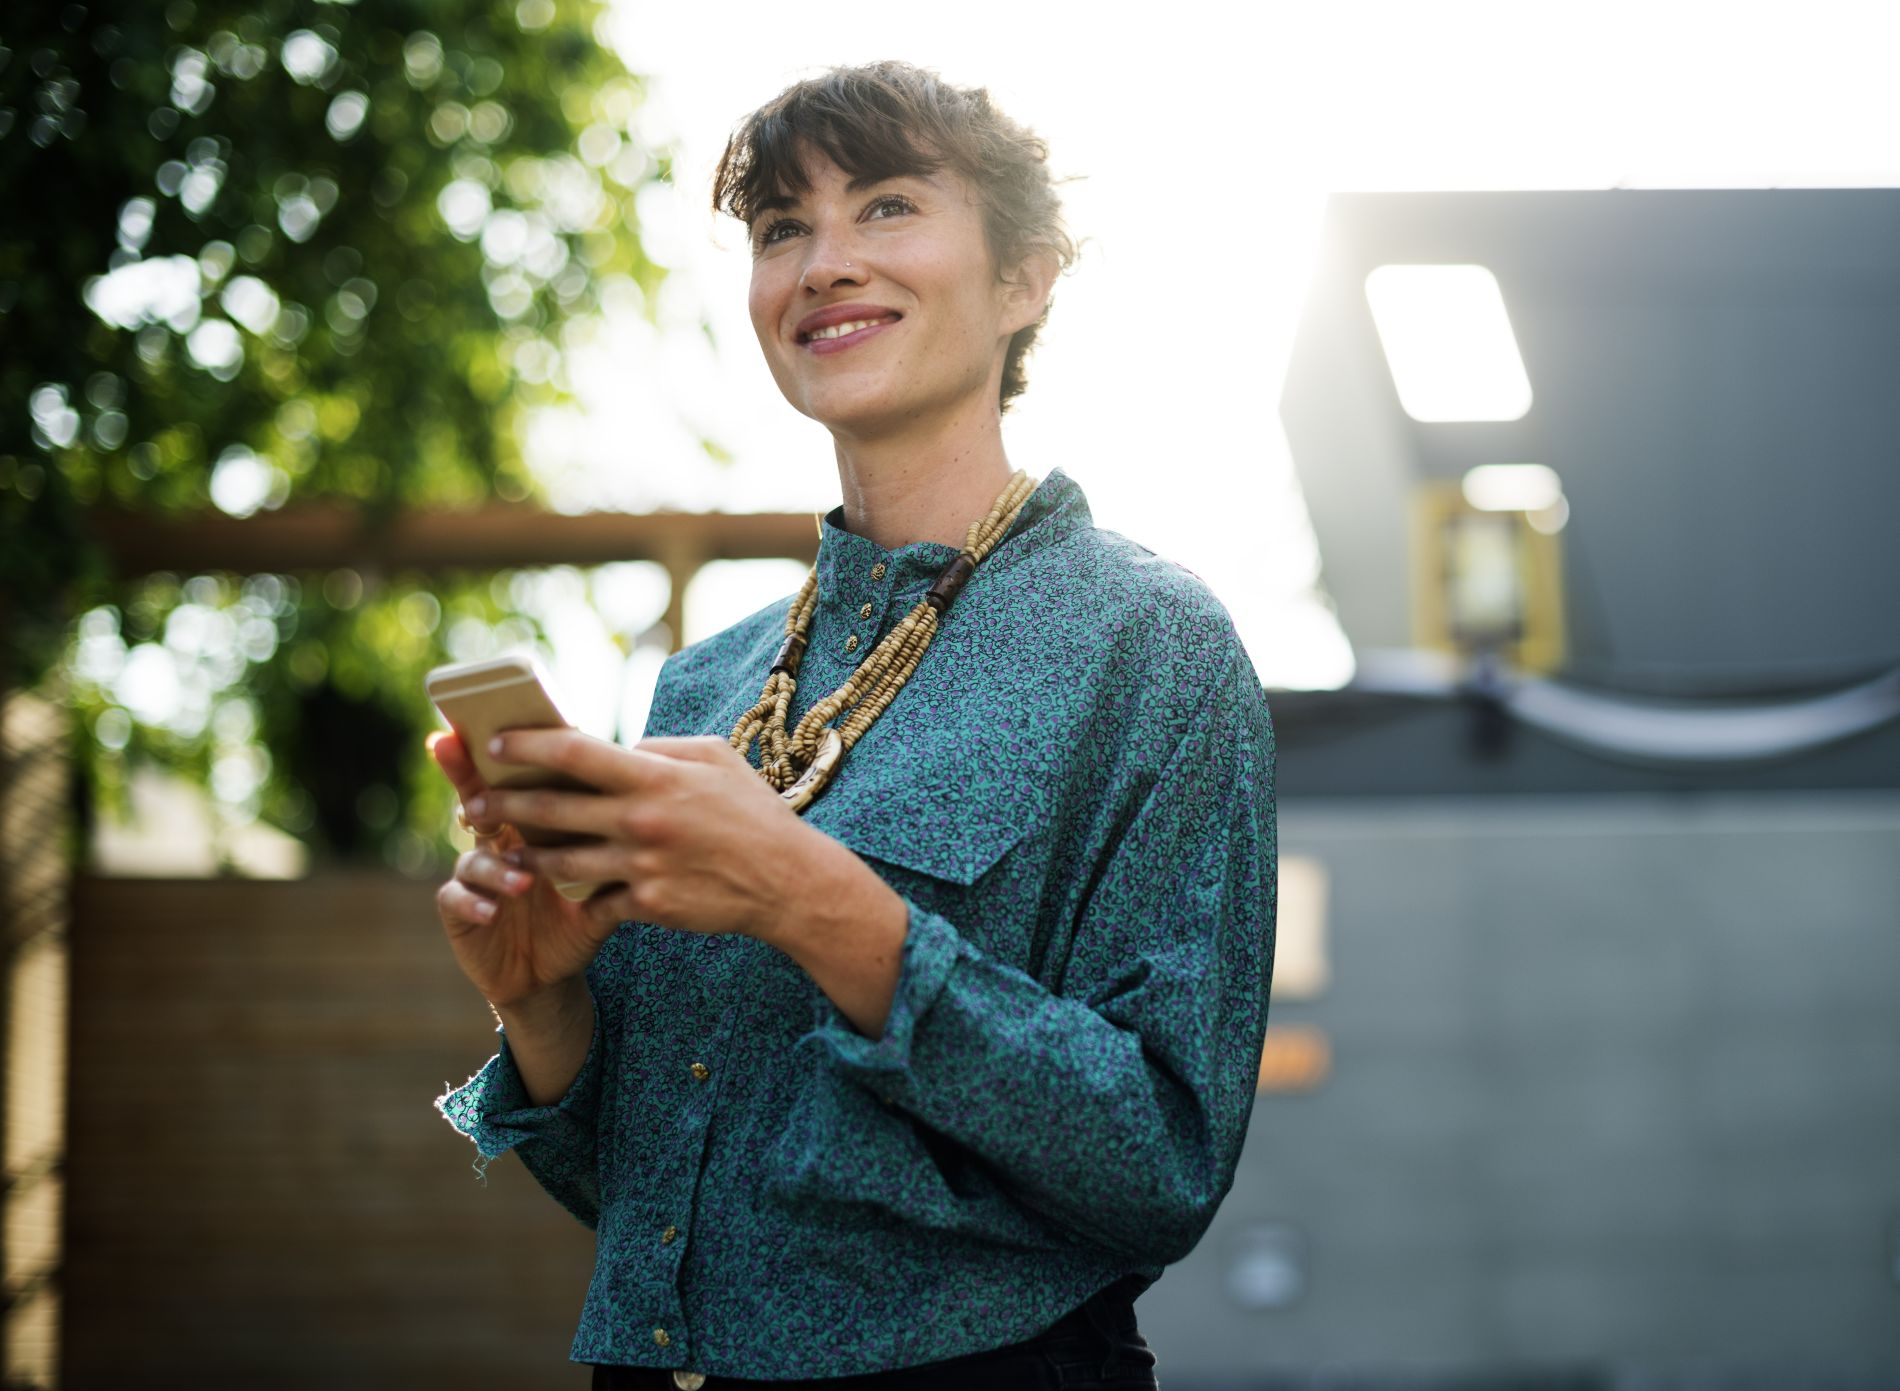 Businesswoman standing and using mobile phone hibob